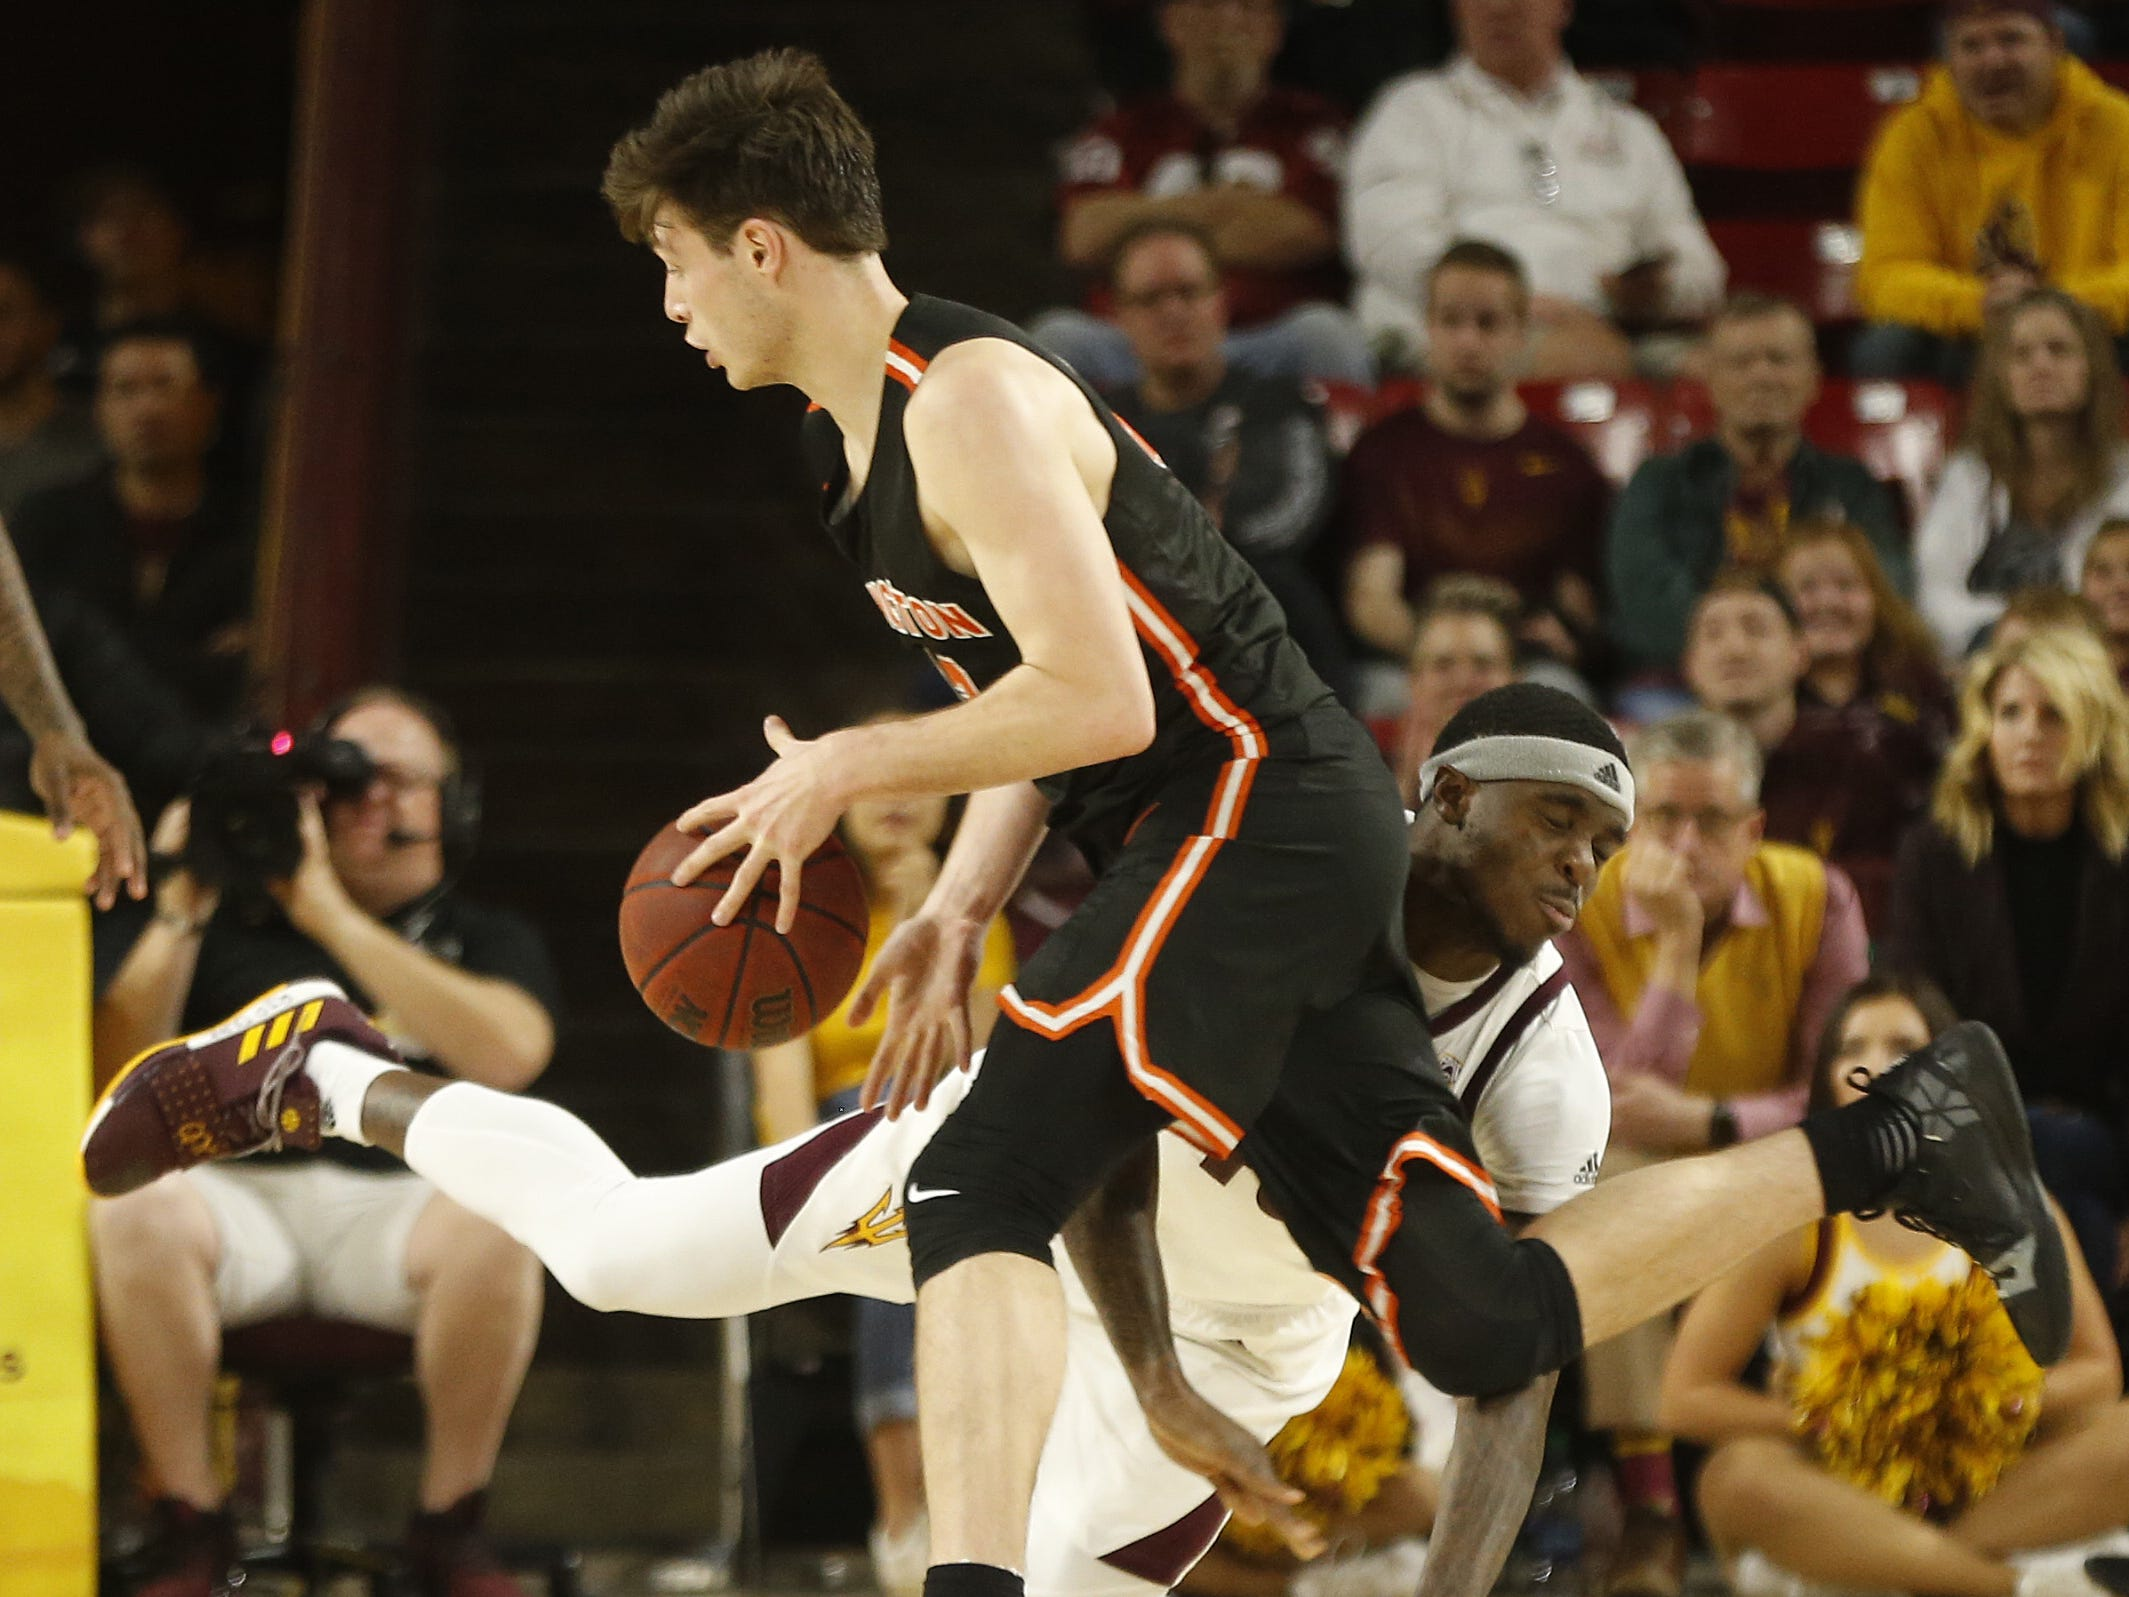 Princeton's Sebastian Much (33) draws a foul on ASU's Zylan Cheatham (45) during the first half at Wells Fargo Arena in Tempe, Ariz. on December 29, 2018.